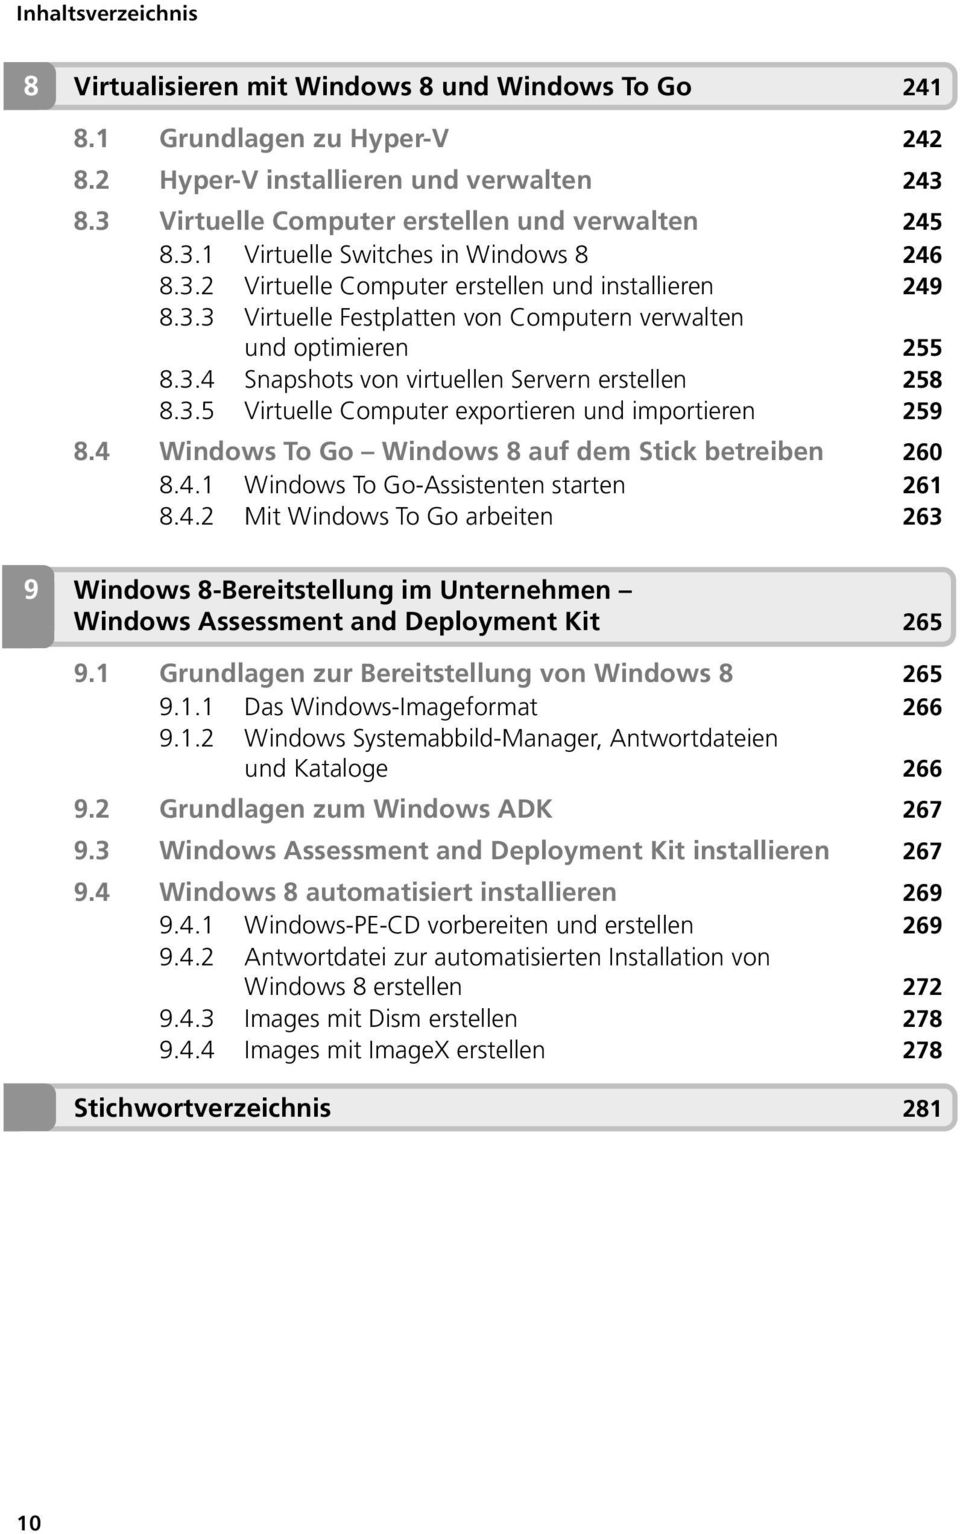 4 Windows To Go Windows 8 auf dem Stick betreiben 260 8.4.1 Windows To Go-Assistenten starten 261 8.4.2 Mit Windows To Go arbeiten 263 9 Windows 8-Bereitstellung im Unternehmen Windows Assessment and Deployment Kit 265 9.